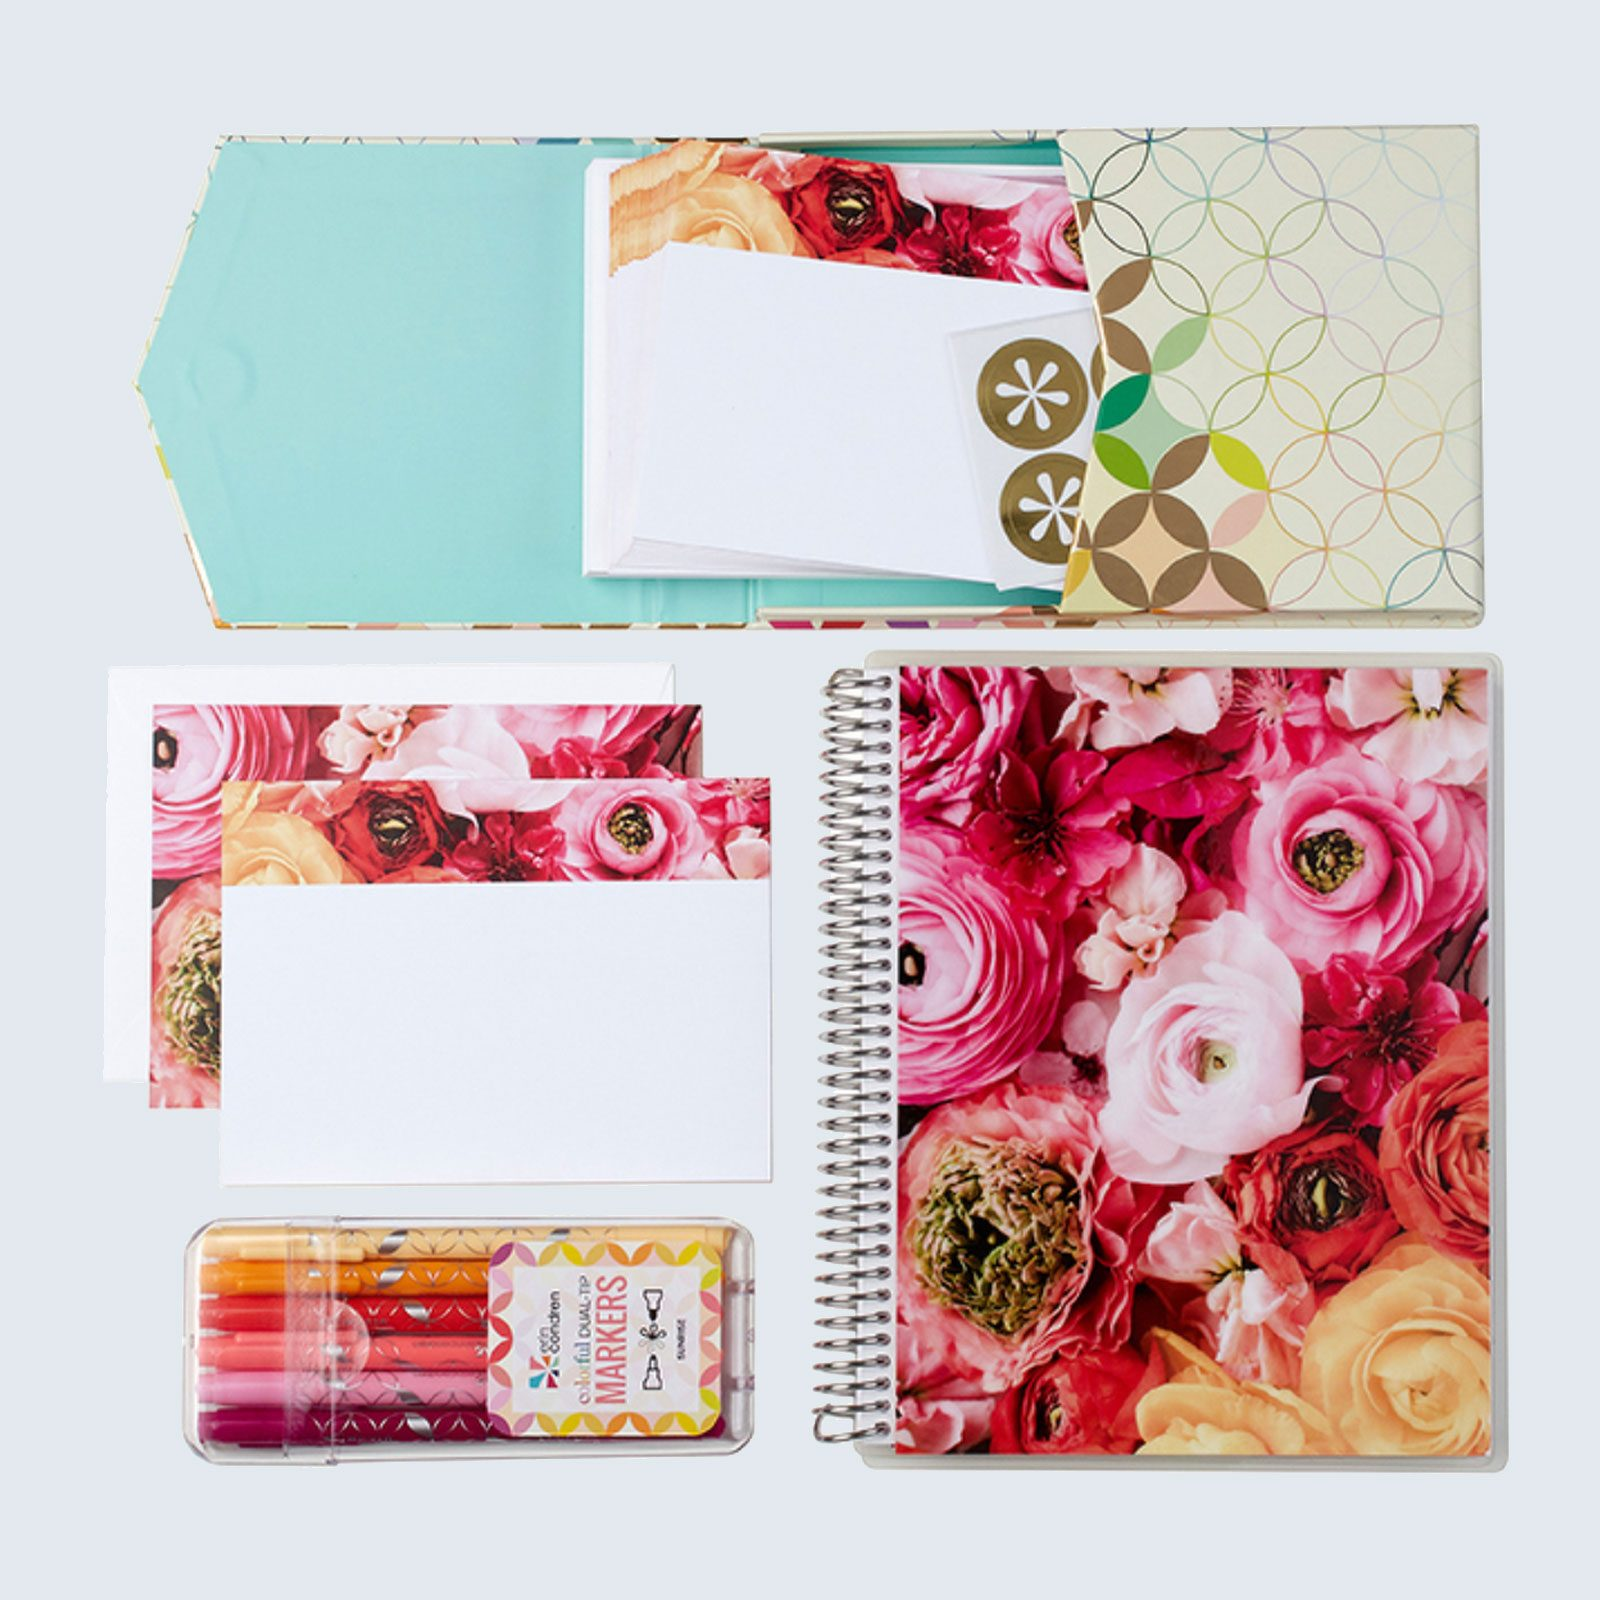 Green Wedding Shoes x Erin Condren Stationery Bundle